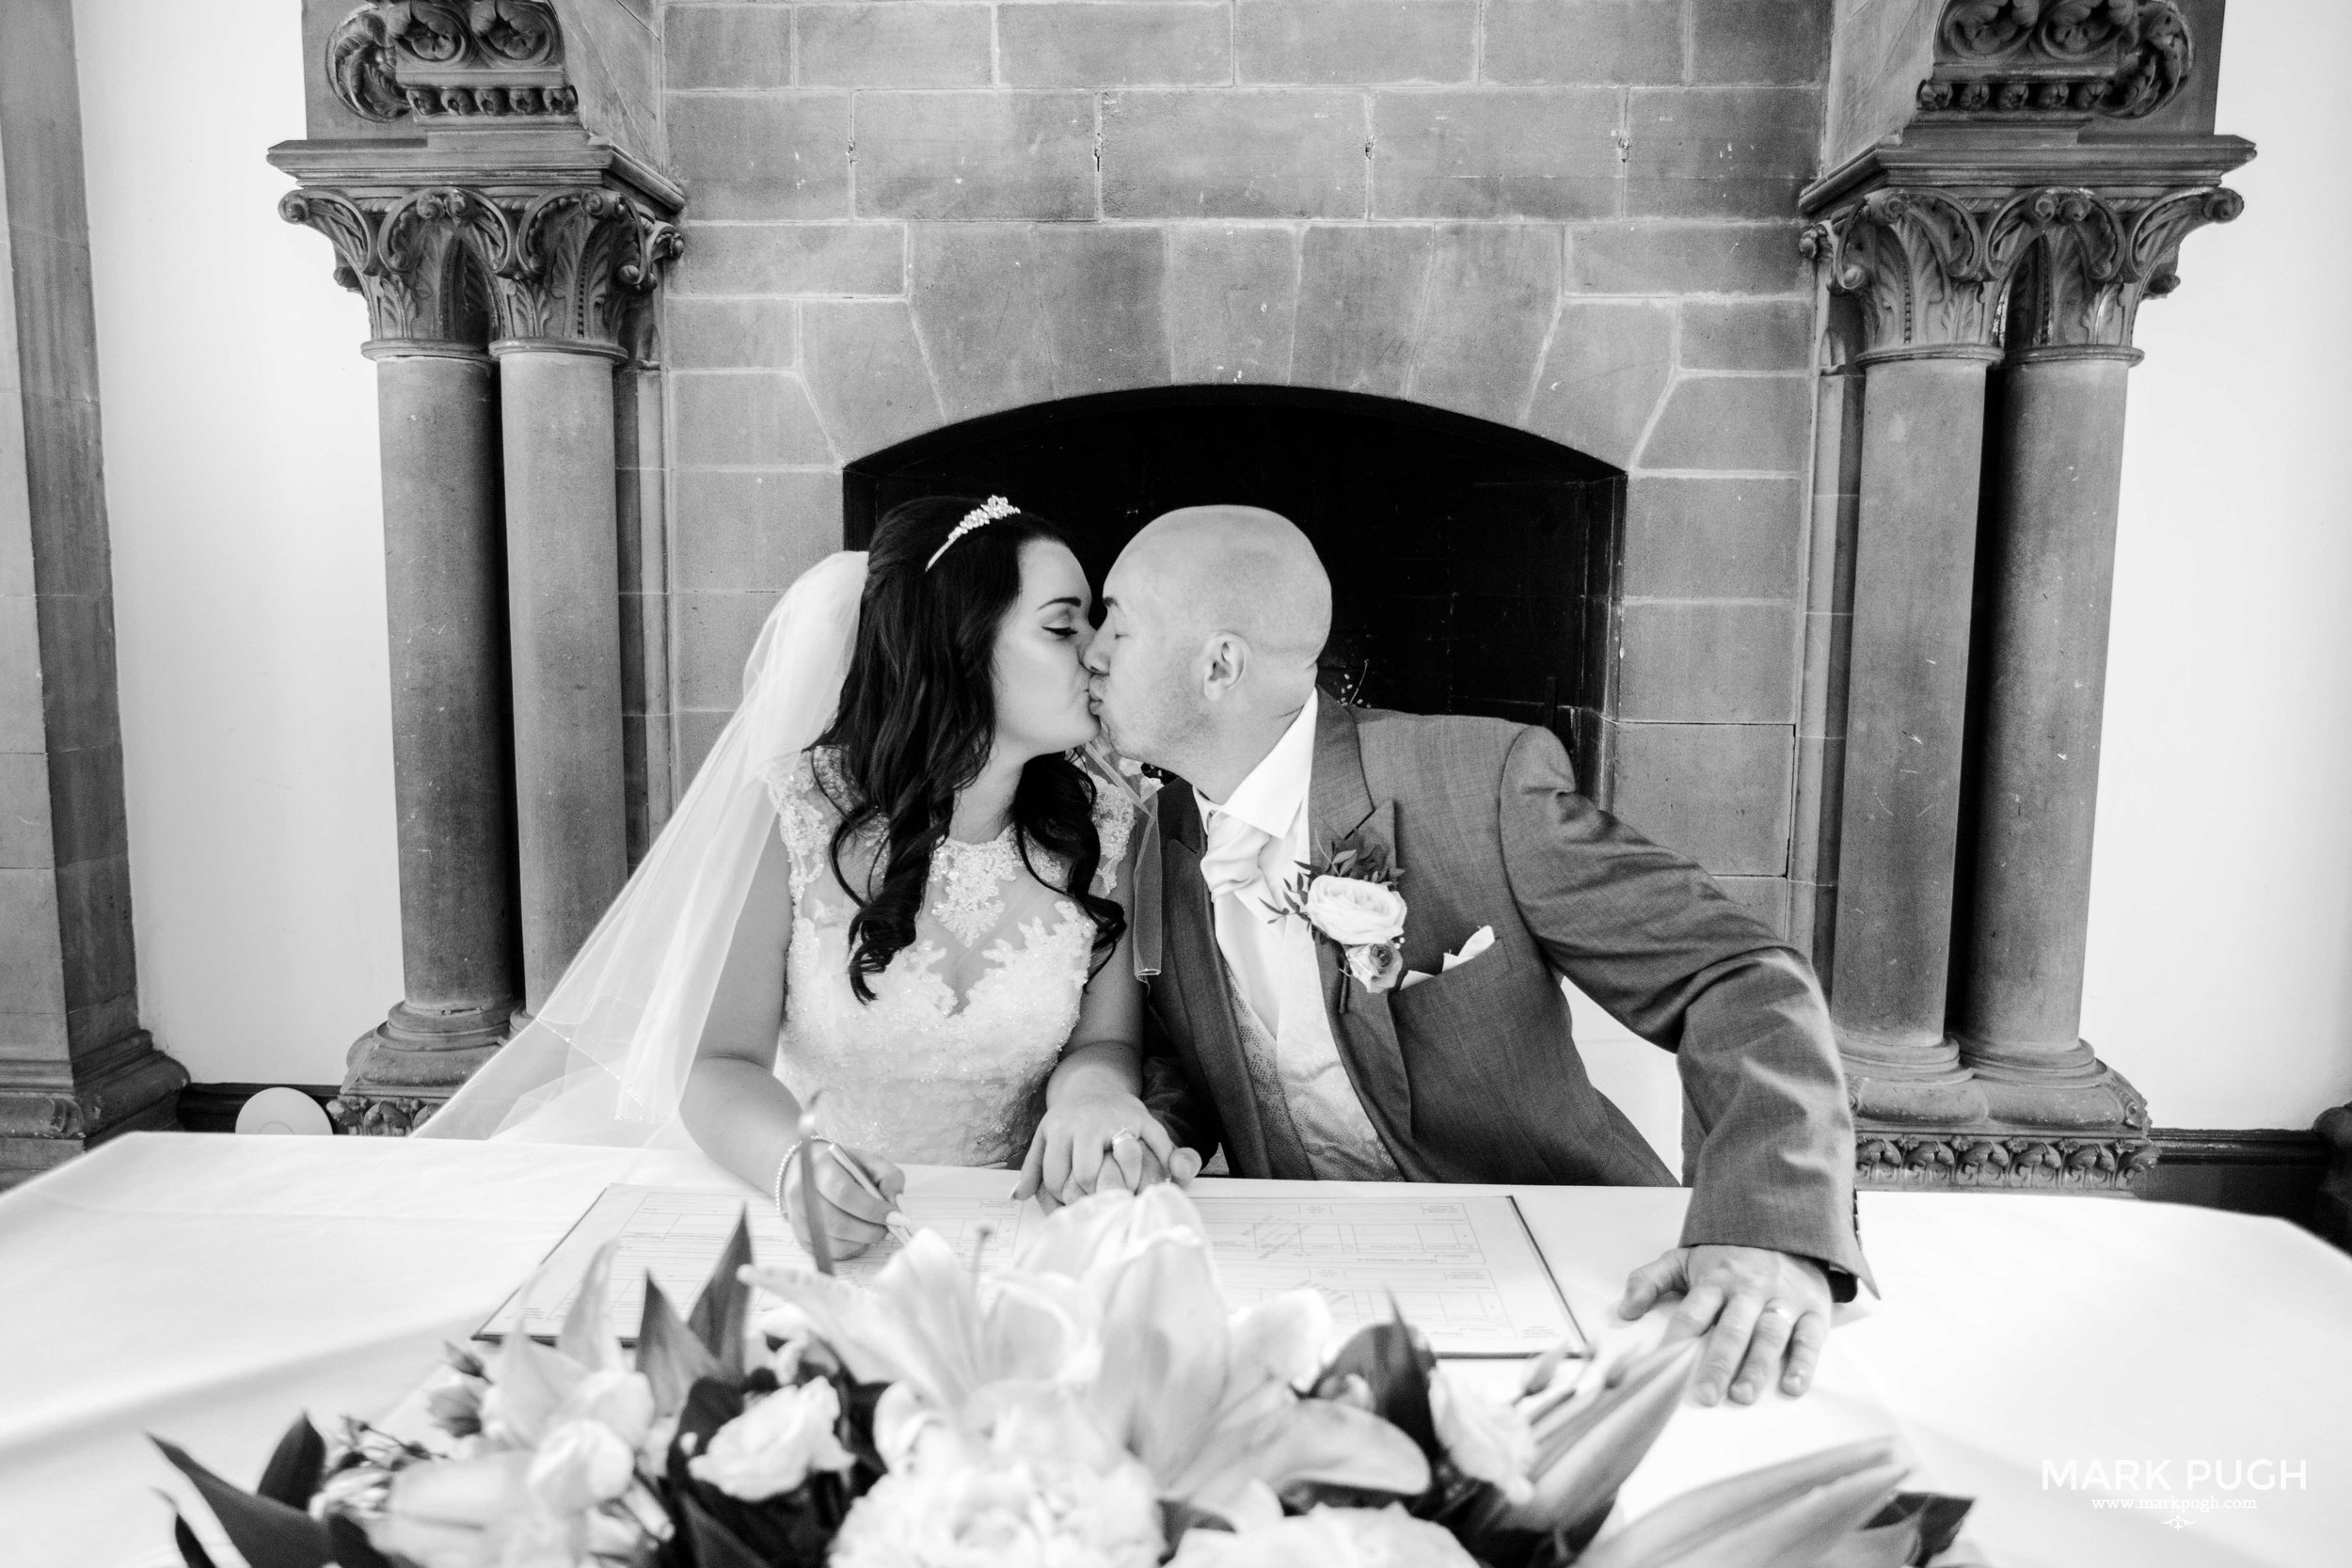 052 - Lauren and Tim - fineART wedding photography at Kelham Hall Newark UK by www.markpugh.com Mark Pugh of www.mpmedia.co.uk_.JPG